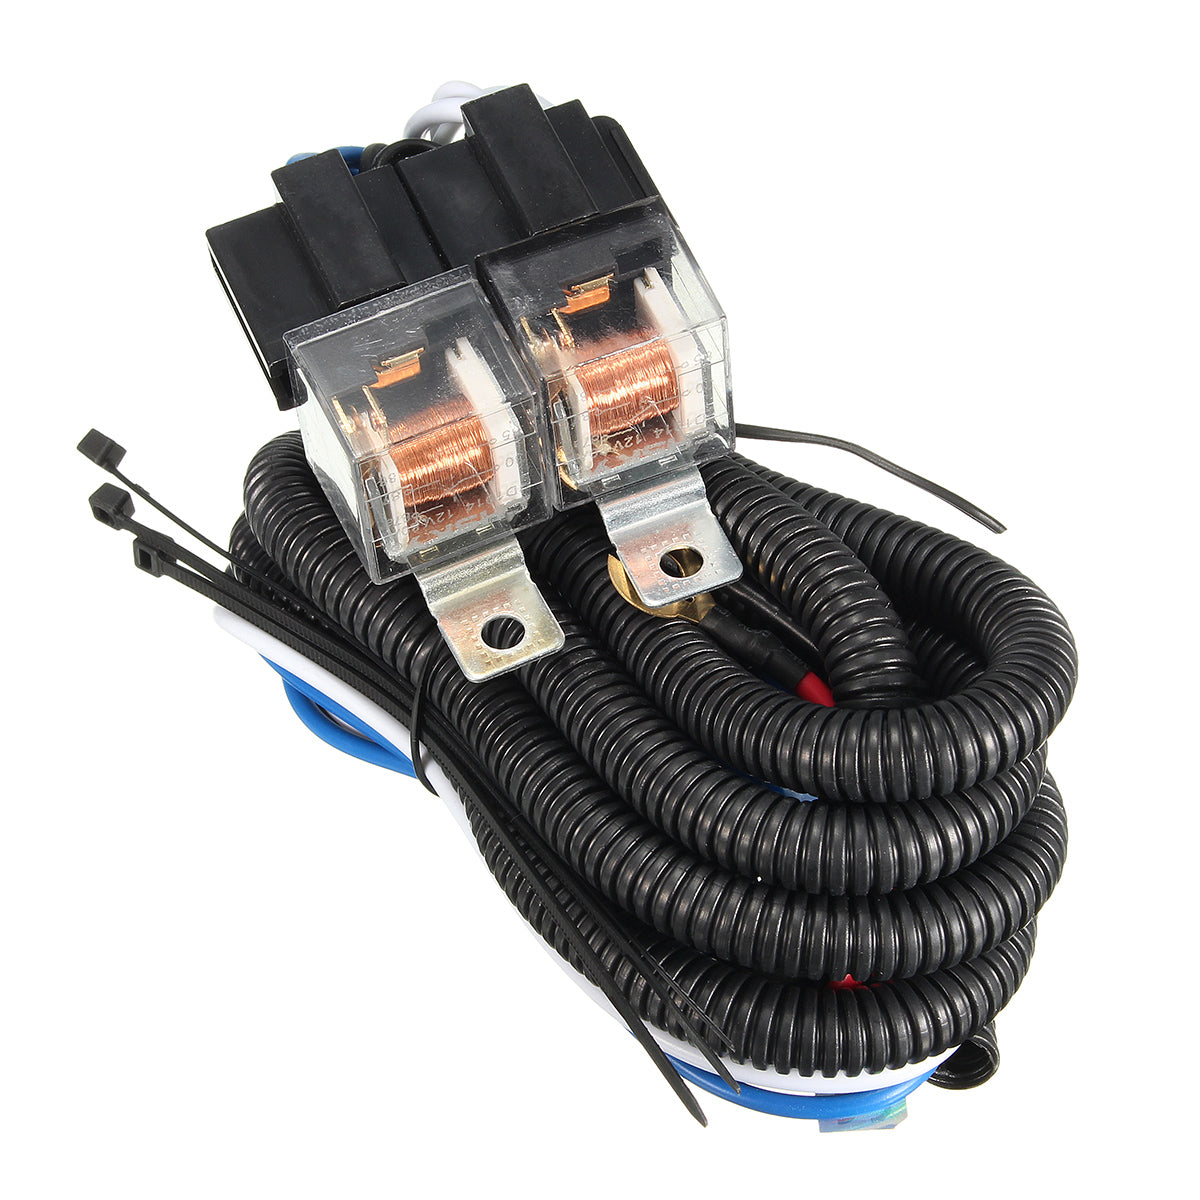 Rings 12v 7inch H4 Headlight 2 Headlamp Relay Wiring Harness Light For Also Connector Diagram Socket Plug